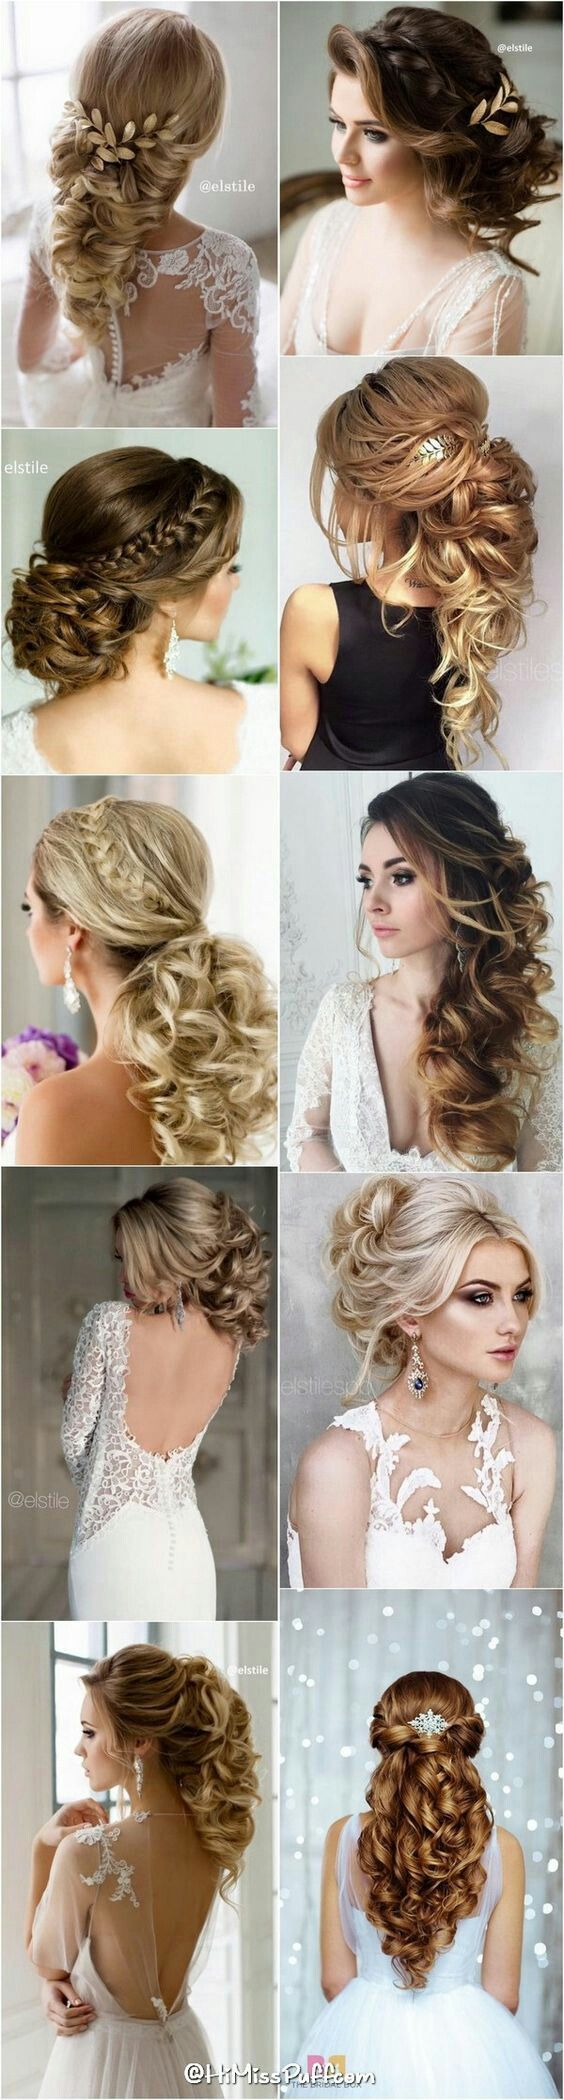 Fairytale Princess Chic Wedding Hairstyles